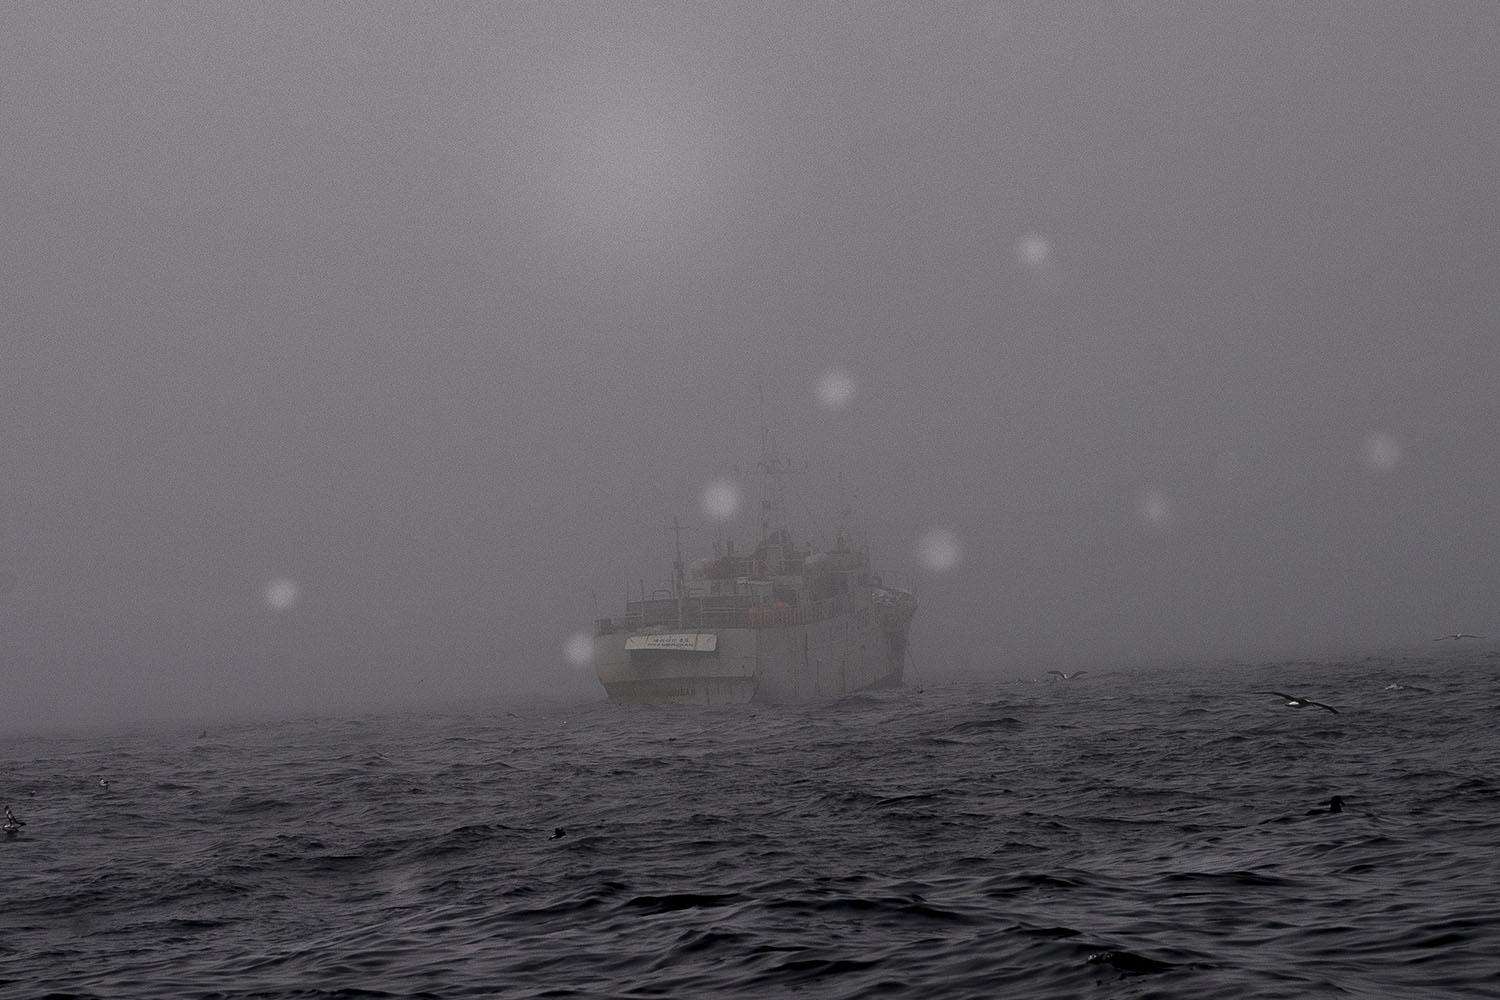 Spanish troller between the limits of Argentina and international waters. South west Atlantic Ocean. Argentina.